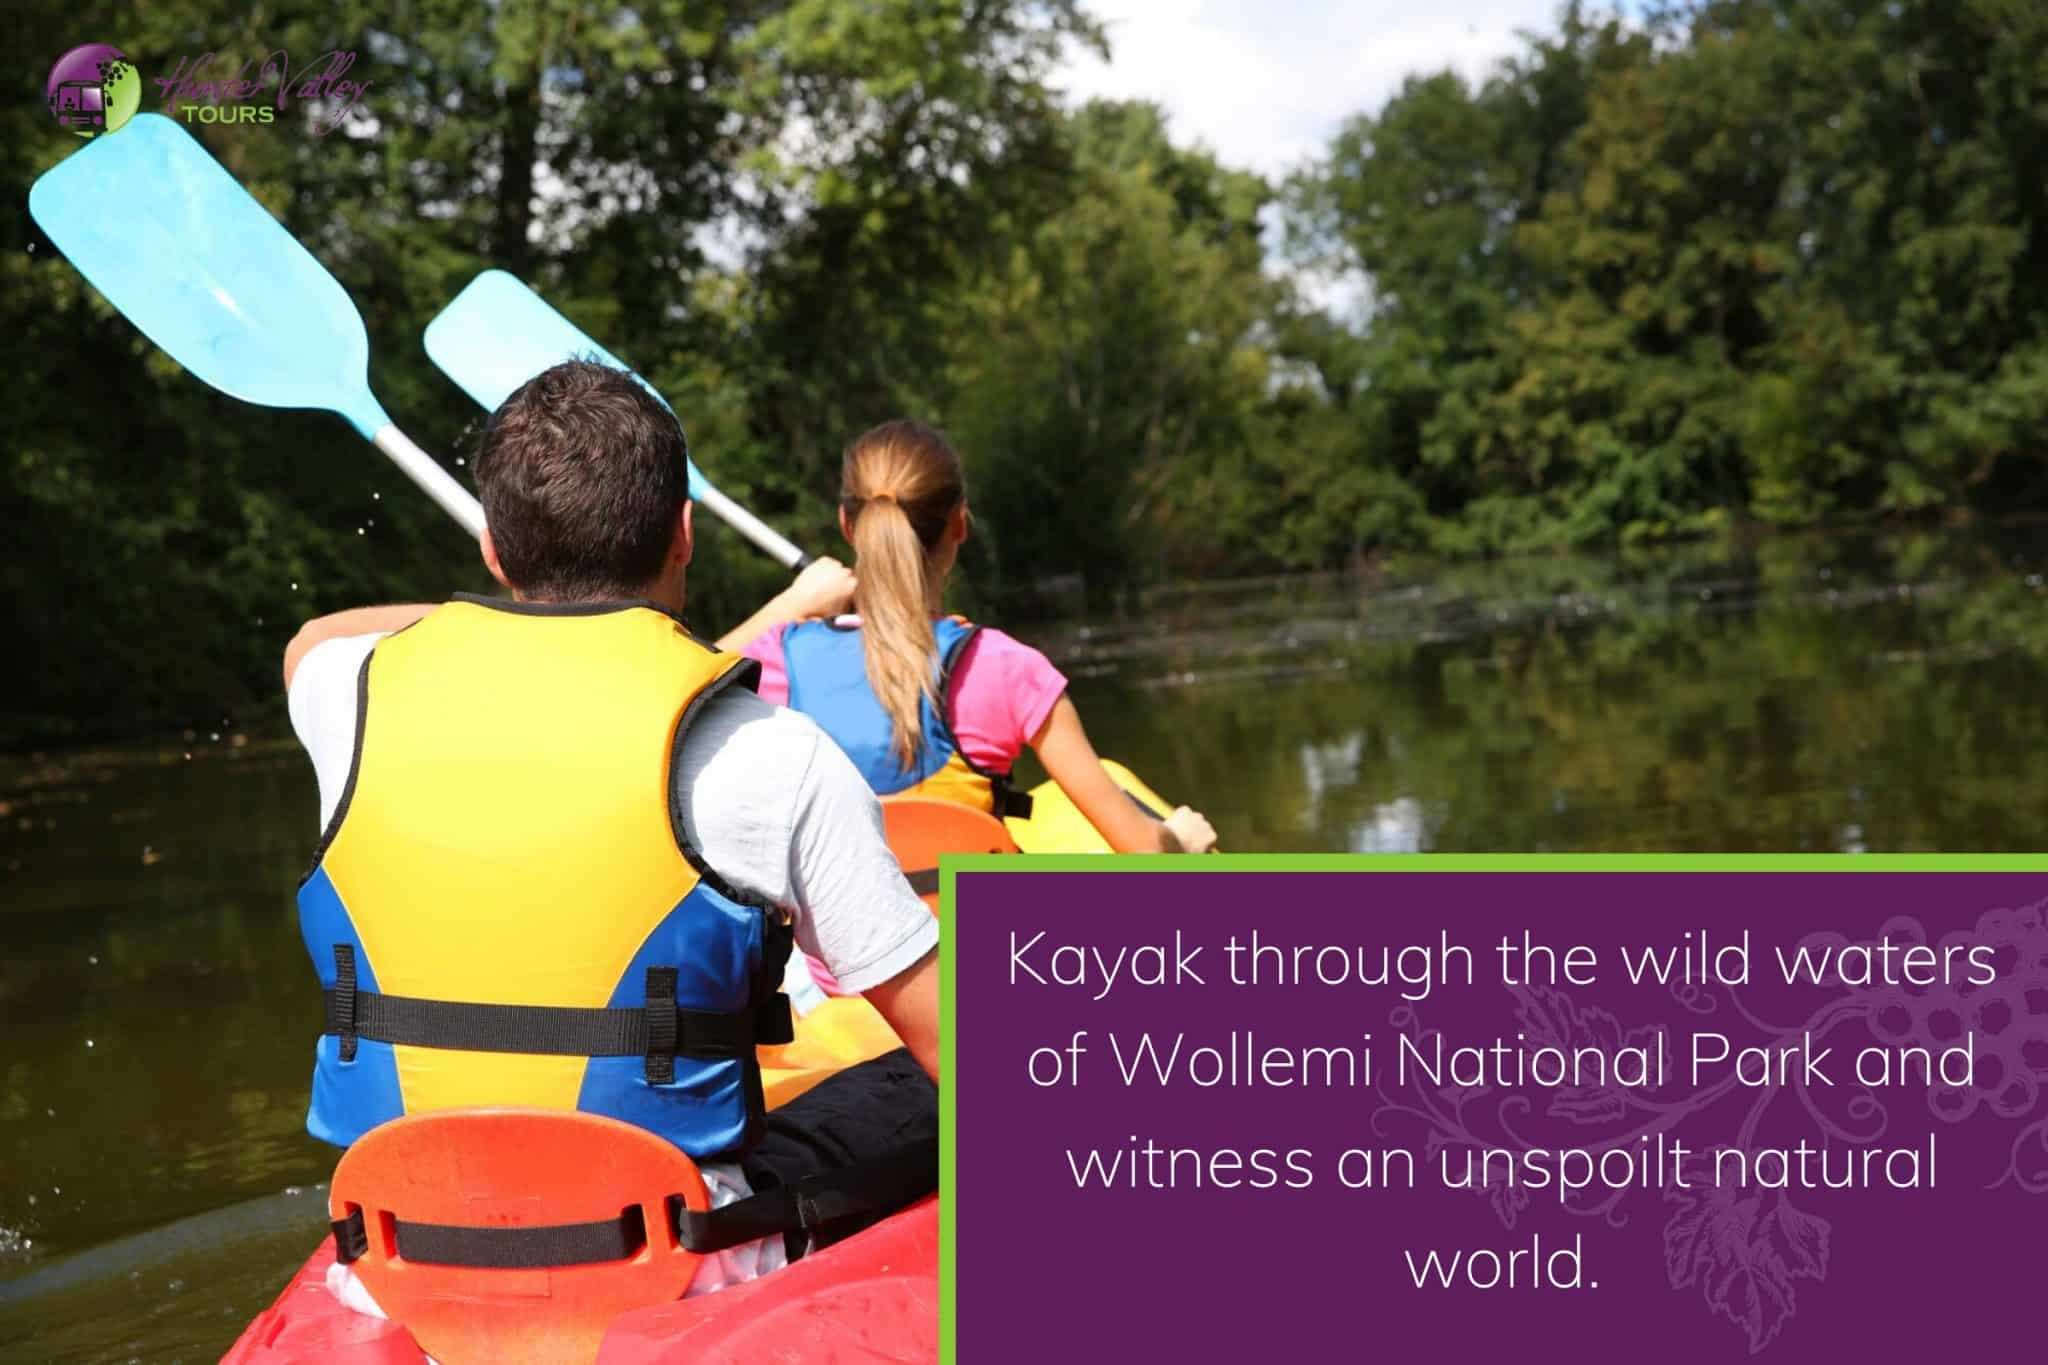 Kayak through the wild waters of Wollemi National Park